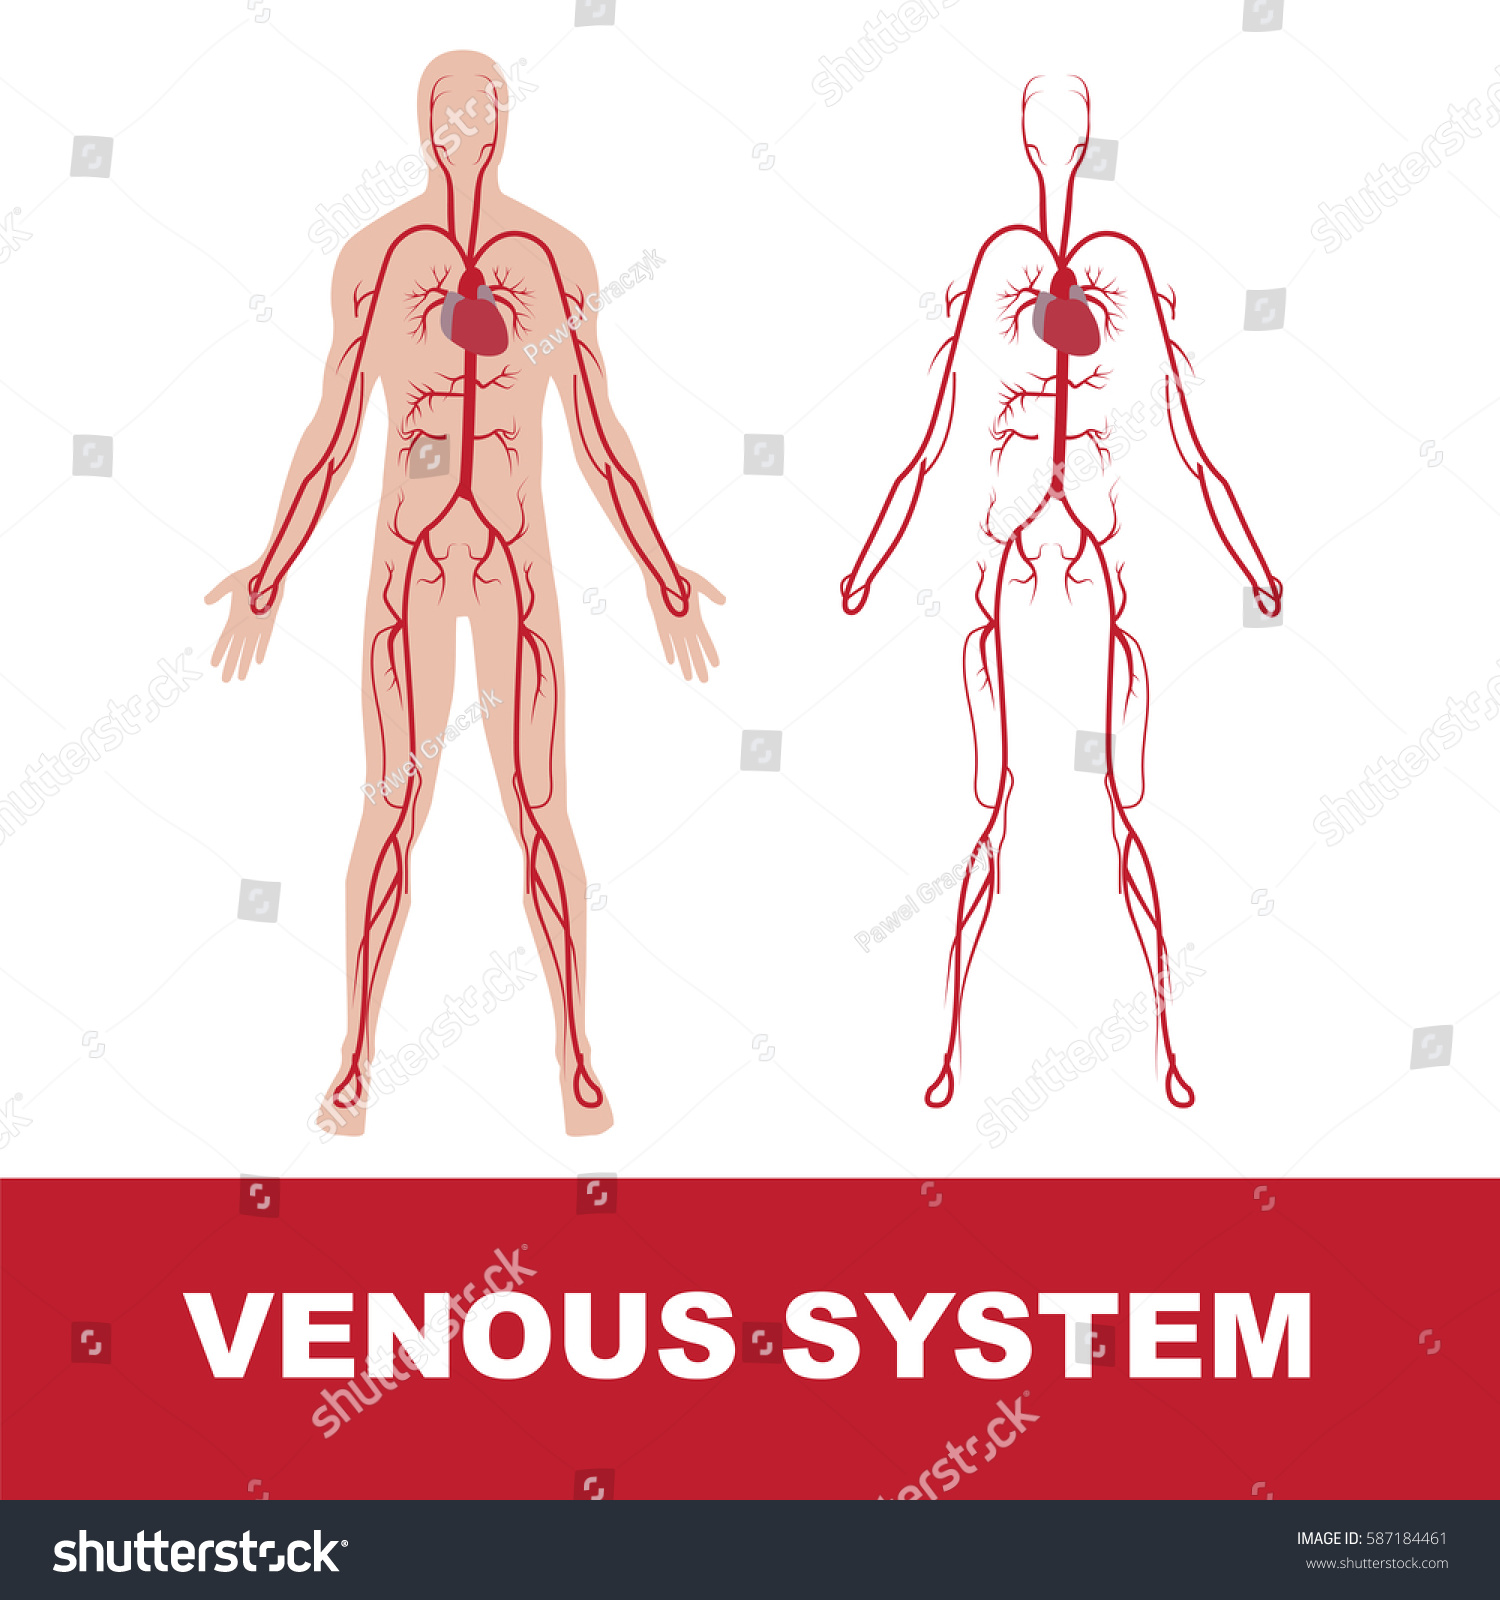 Vector Illustration Human Venous System Isolated Stock Vector ...